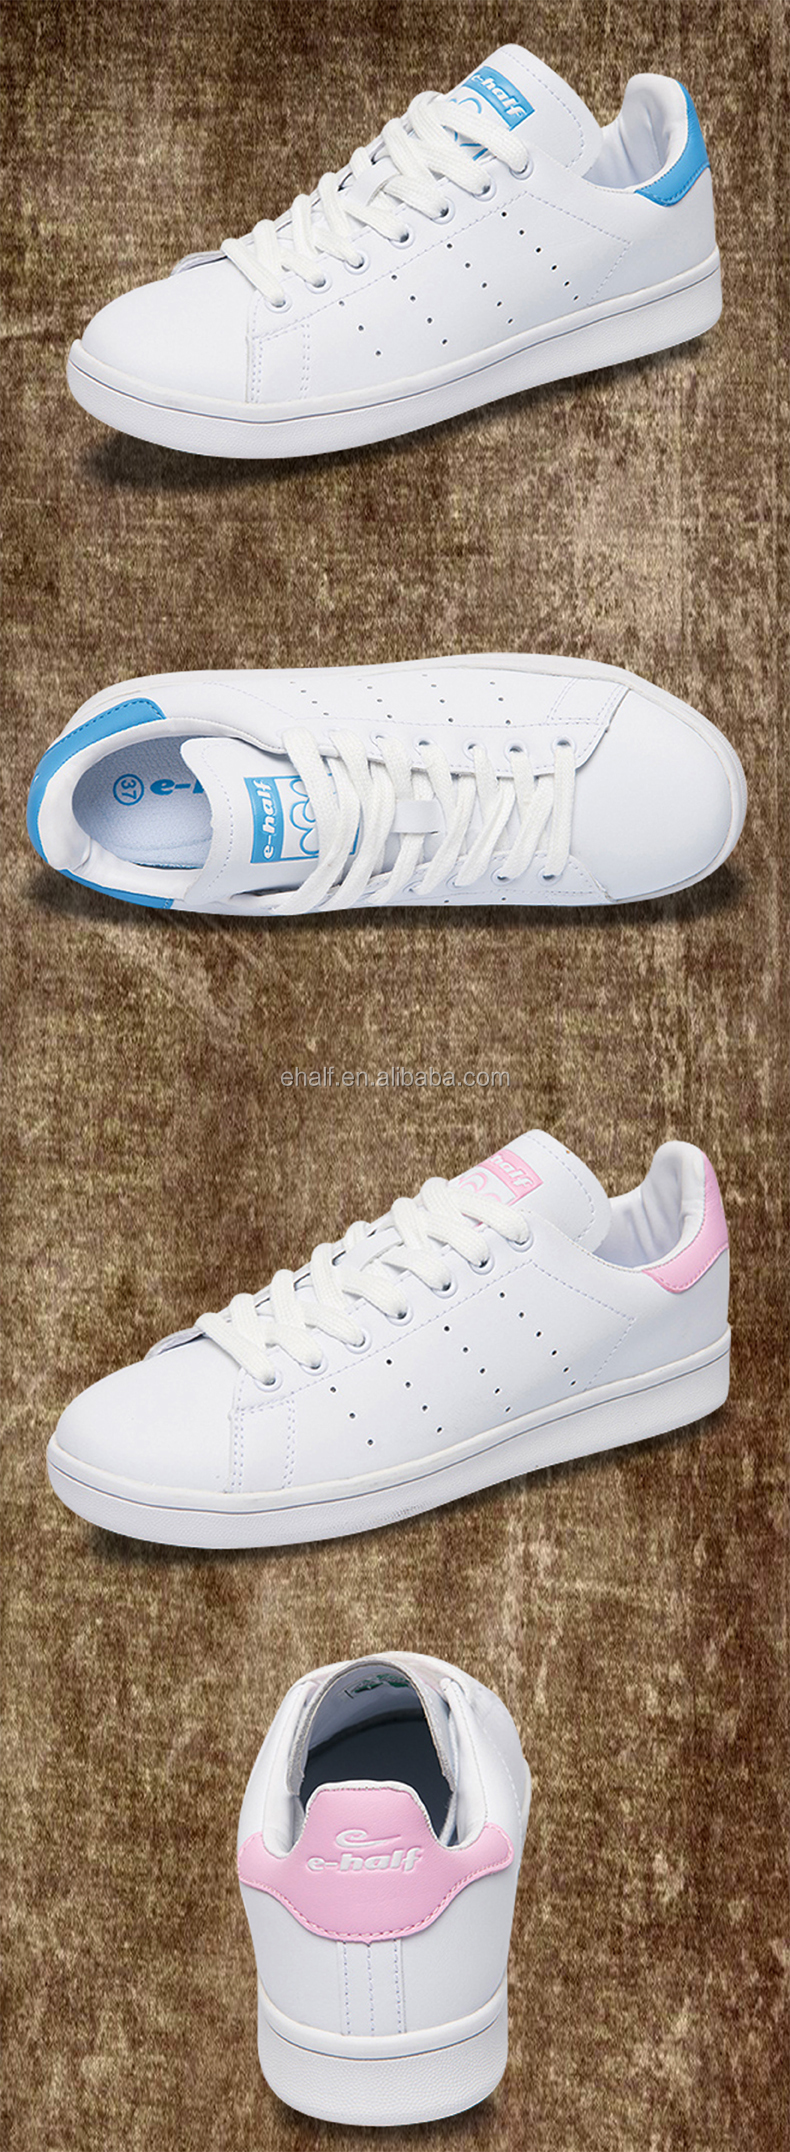 2017 hot sale mens fashion leather white casual shoes sneakers dubai shoes